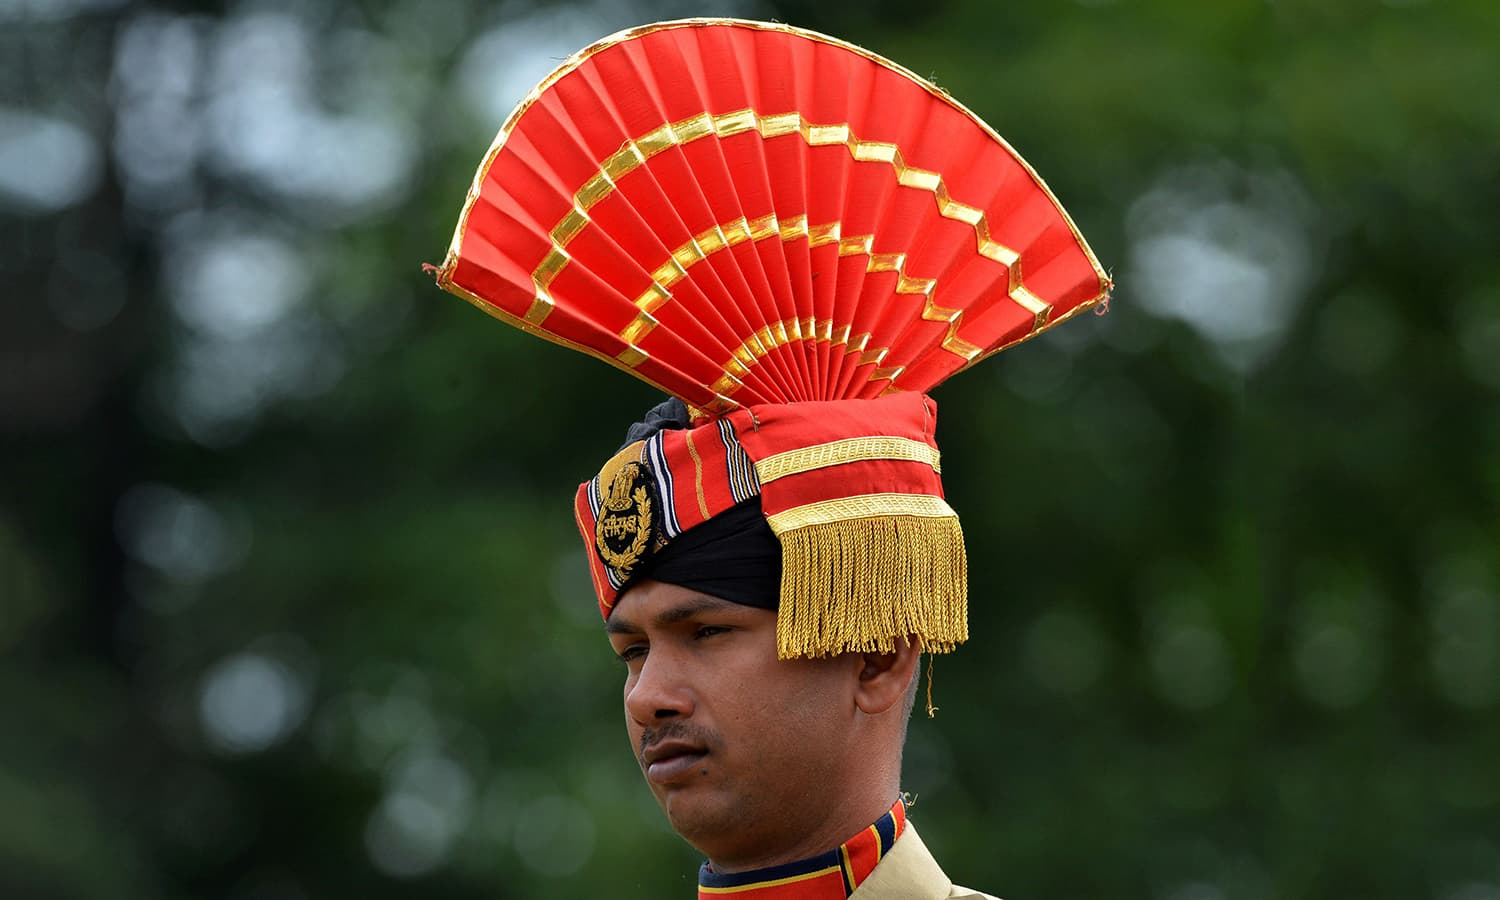 An Indian Border Security Force (BSF) soldier looks on during a celebrations marking Independence Day at The Bakshi Stadium in Srinagar , 2016. — AFP